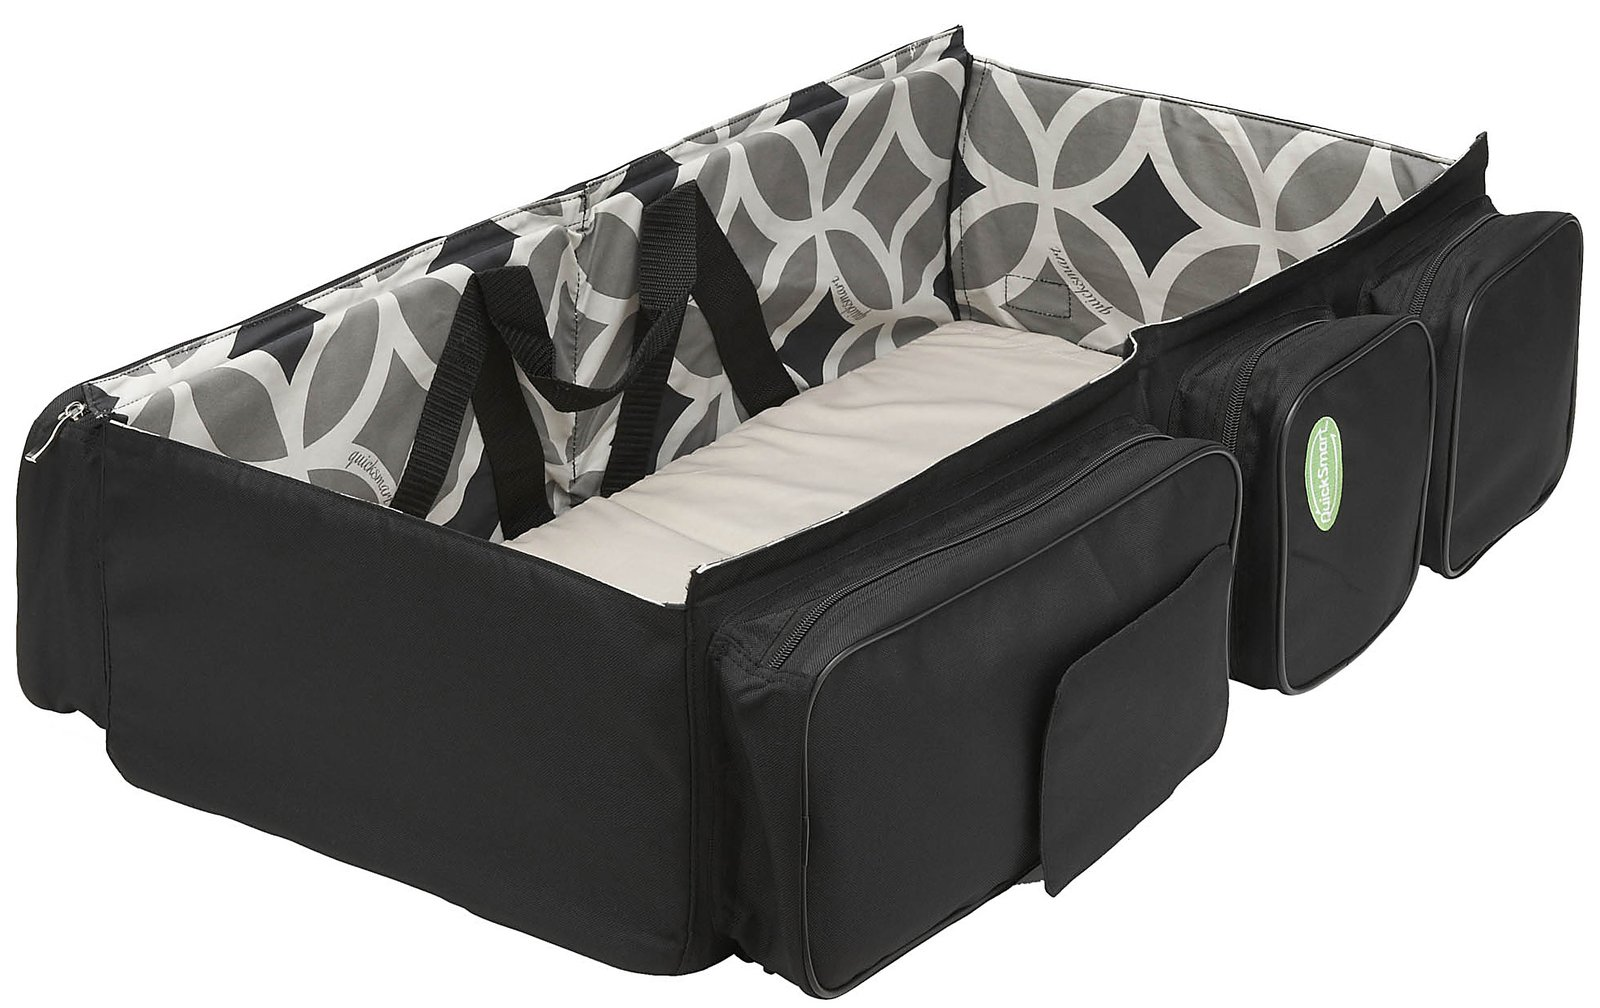 bassinet hammock galleries bassinet diaper bag. Black Bedroom Furniture Sets. Home Design Ideas